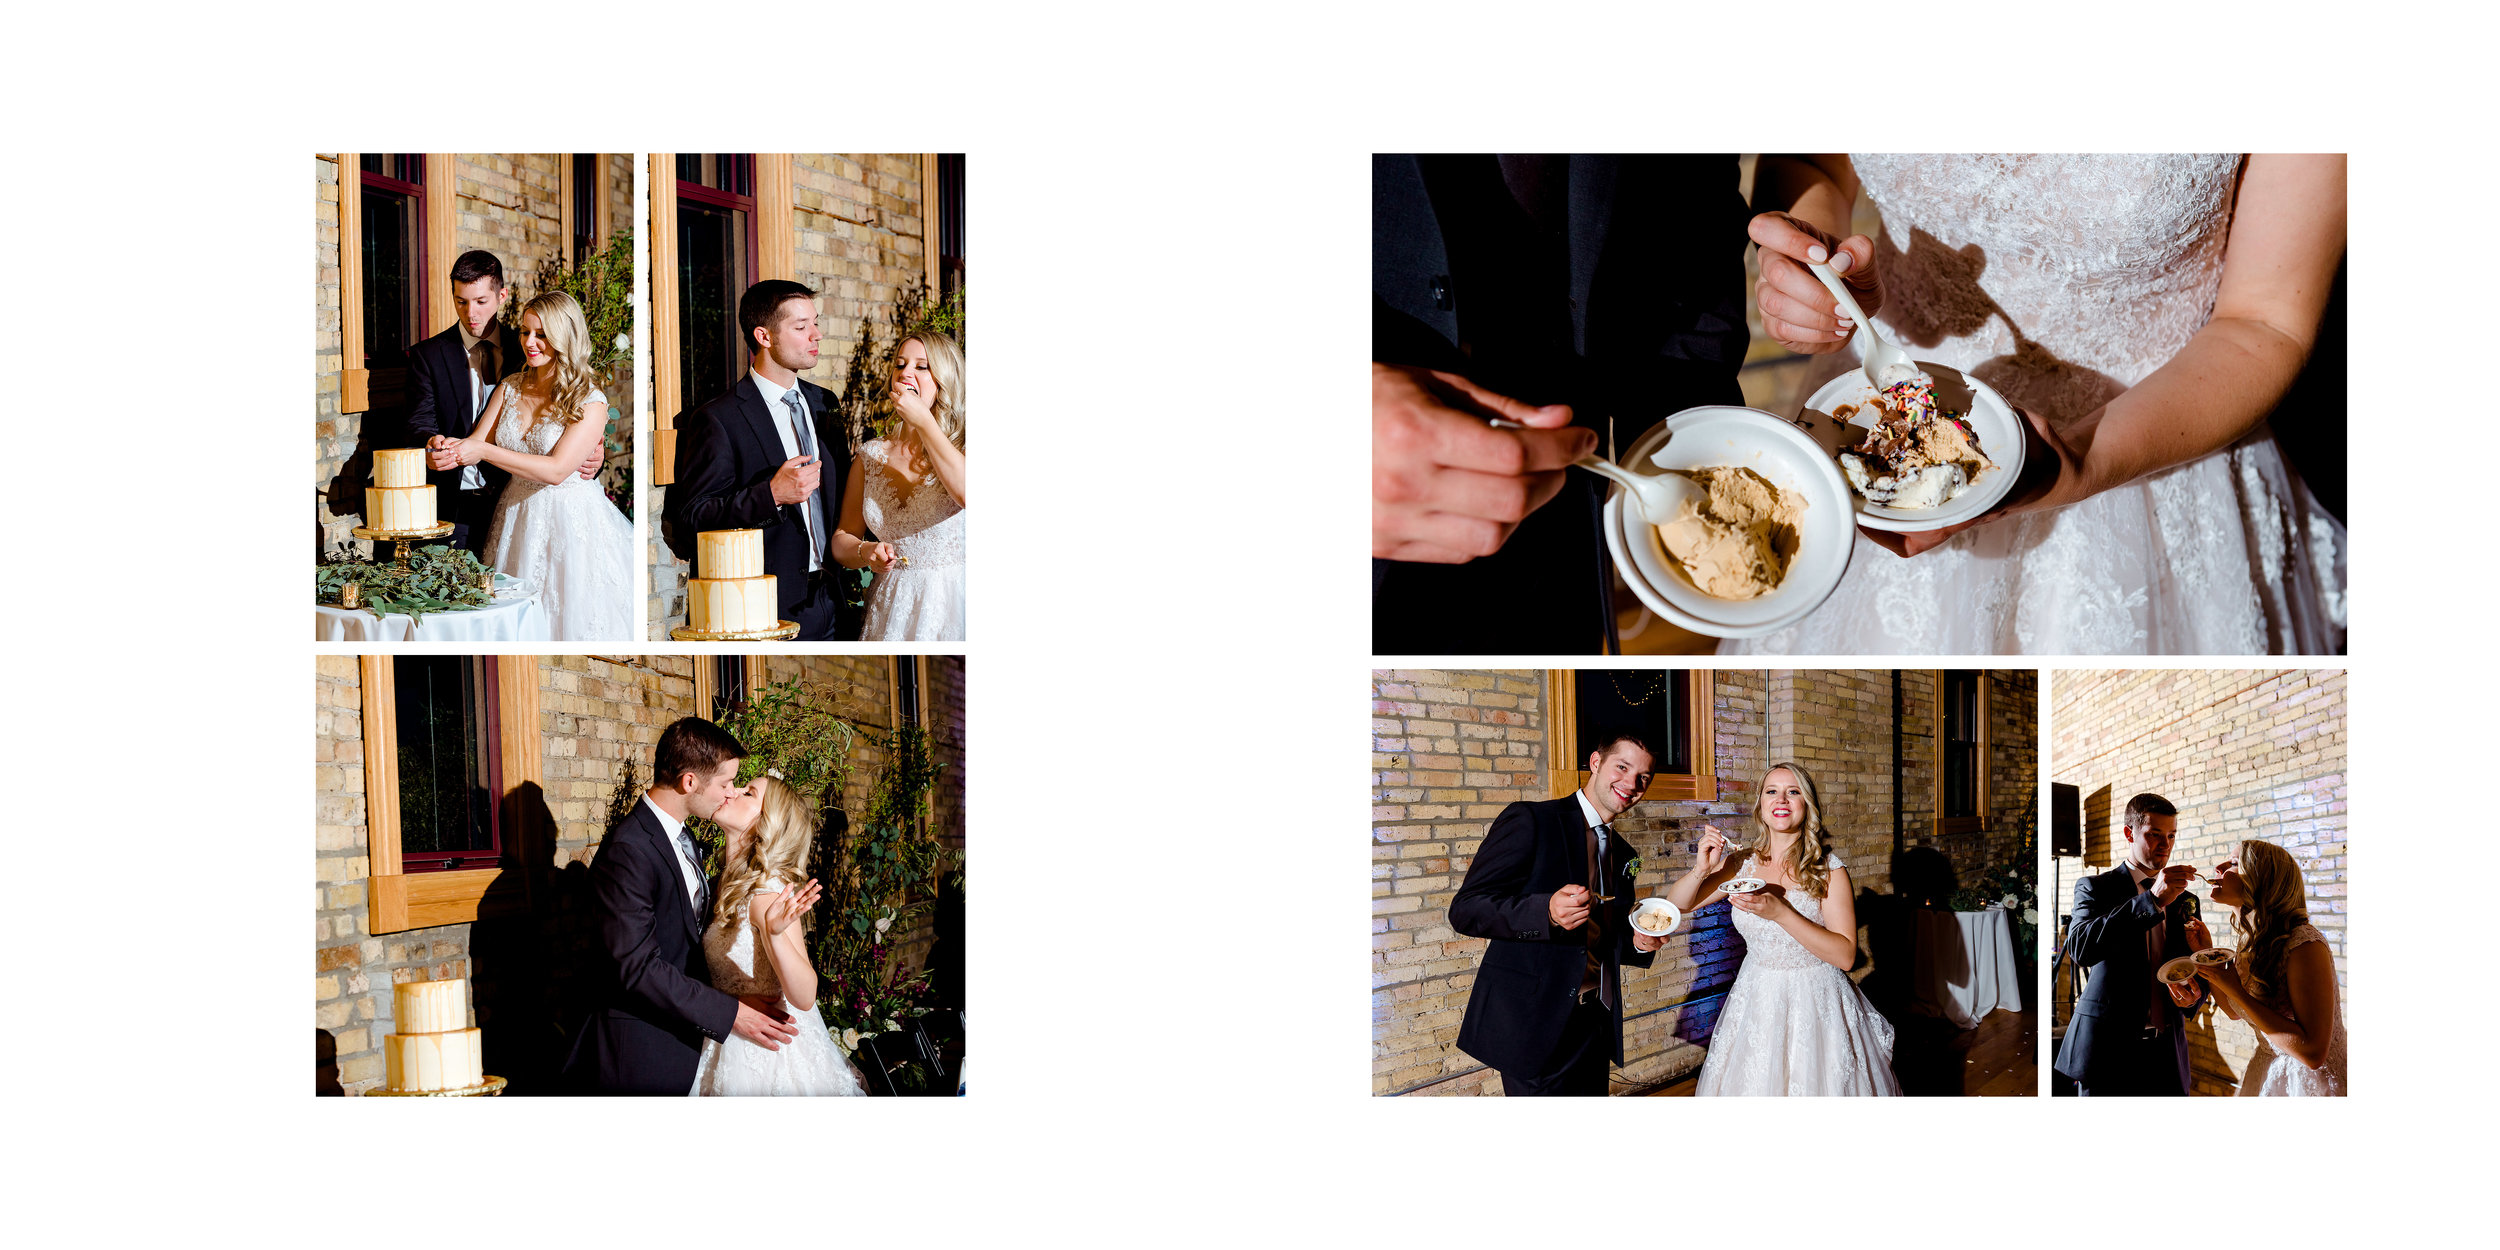 Kristen + Eric - Wedding Album Sample_36.jpg